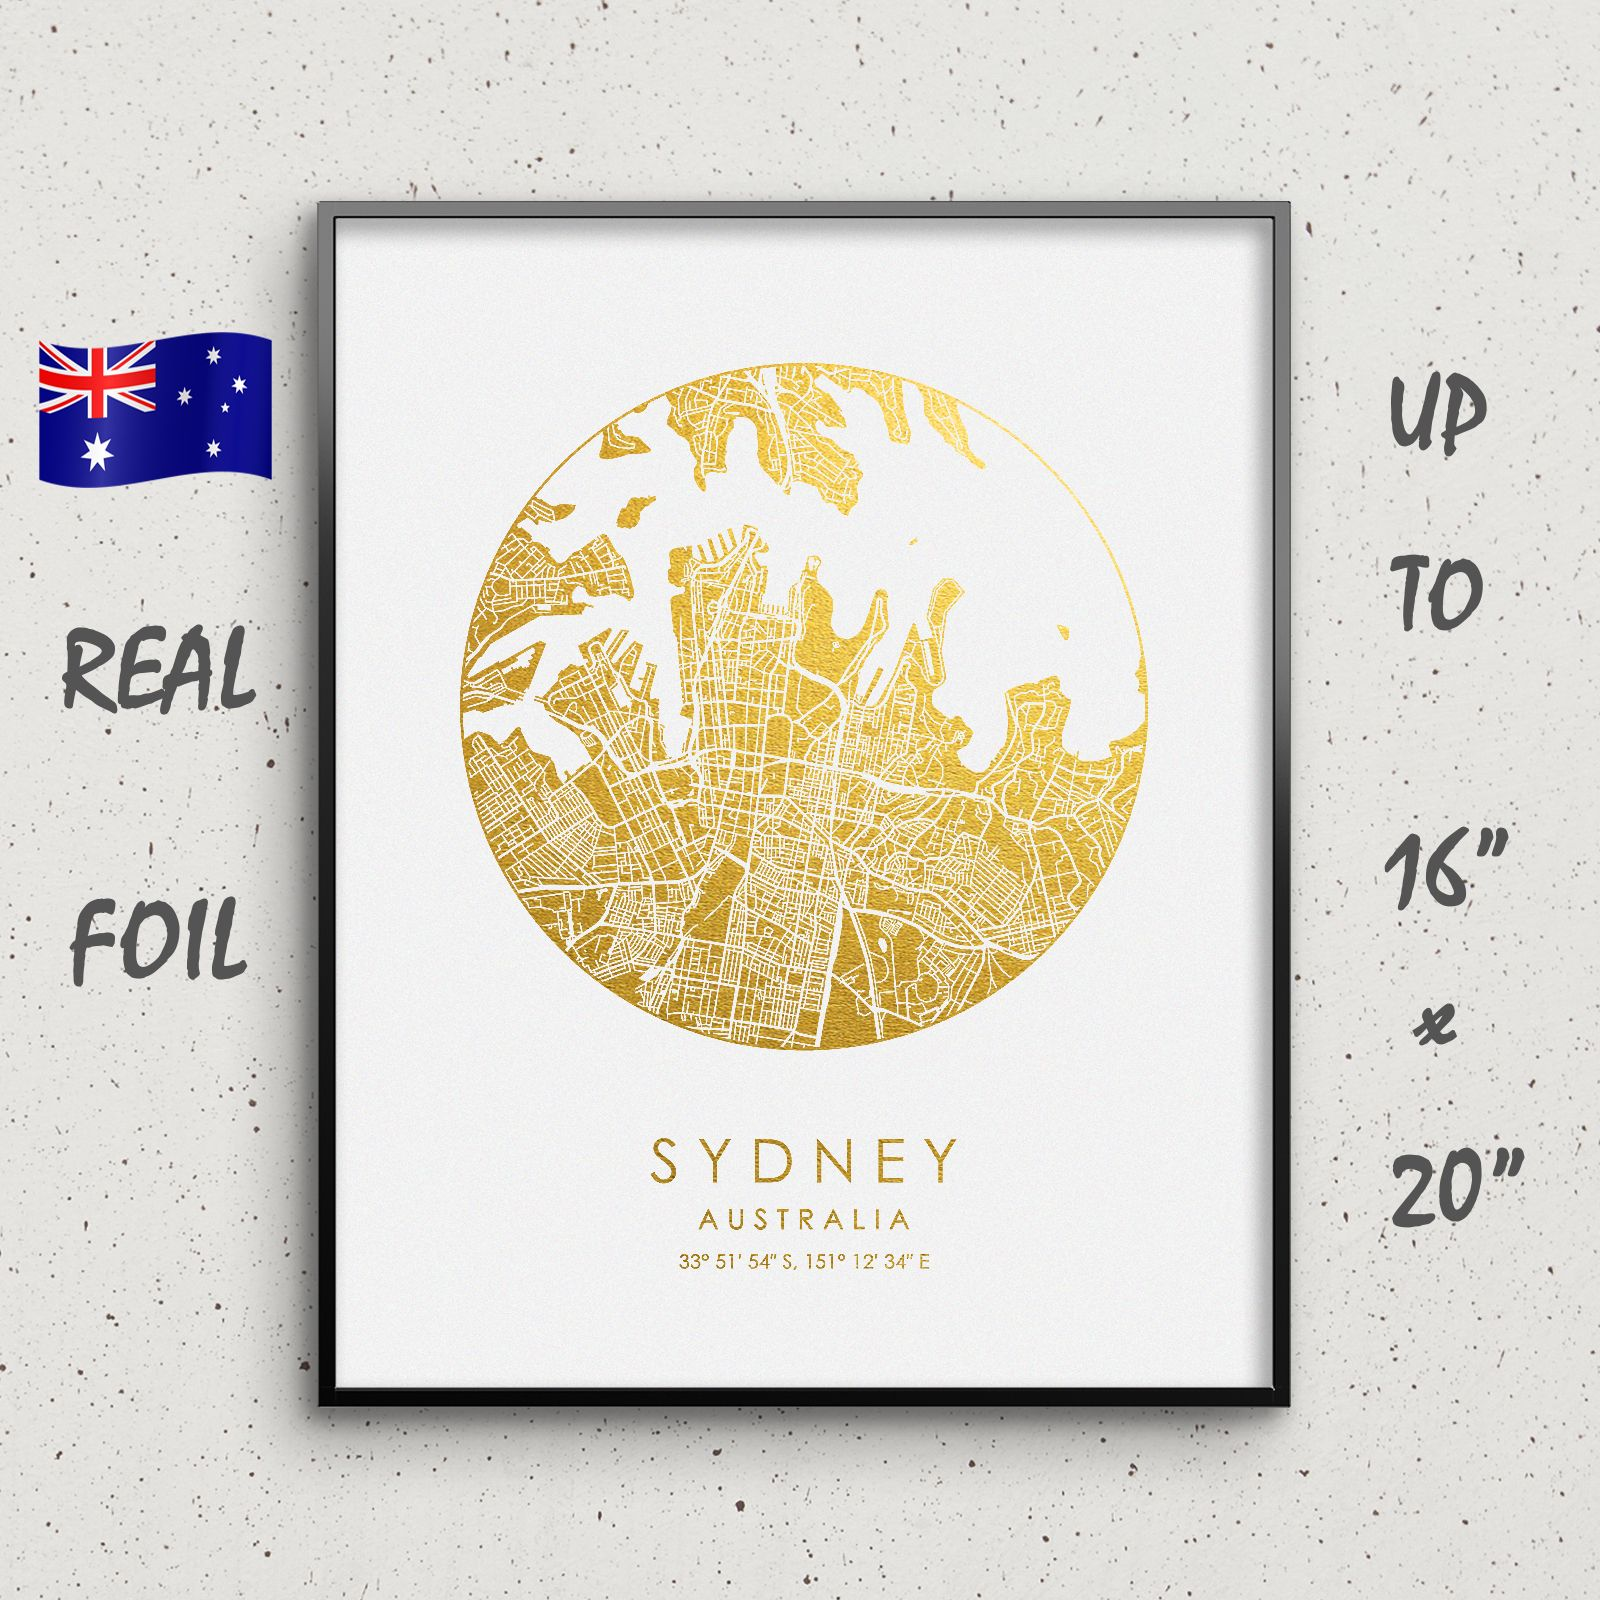 Sydney City Map Print For Wall Art Decor By Goldengraphy Australia On A Gold And Silver Foil Poster For Home Decor And Office D Home Decor Australia Map Wall Art